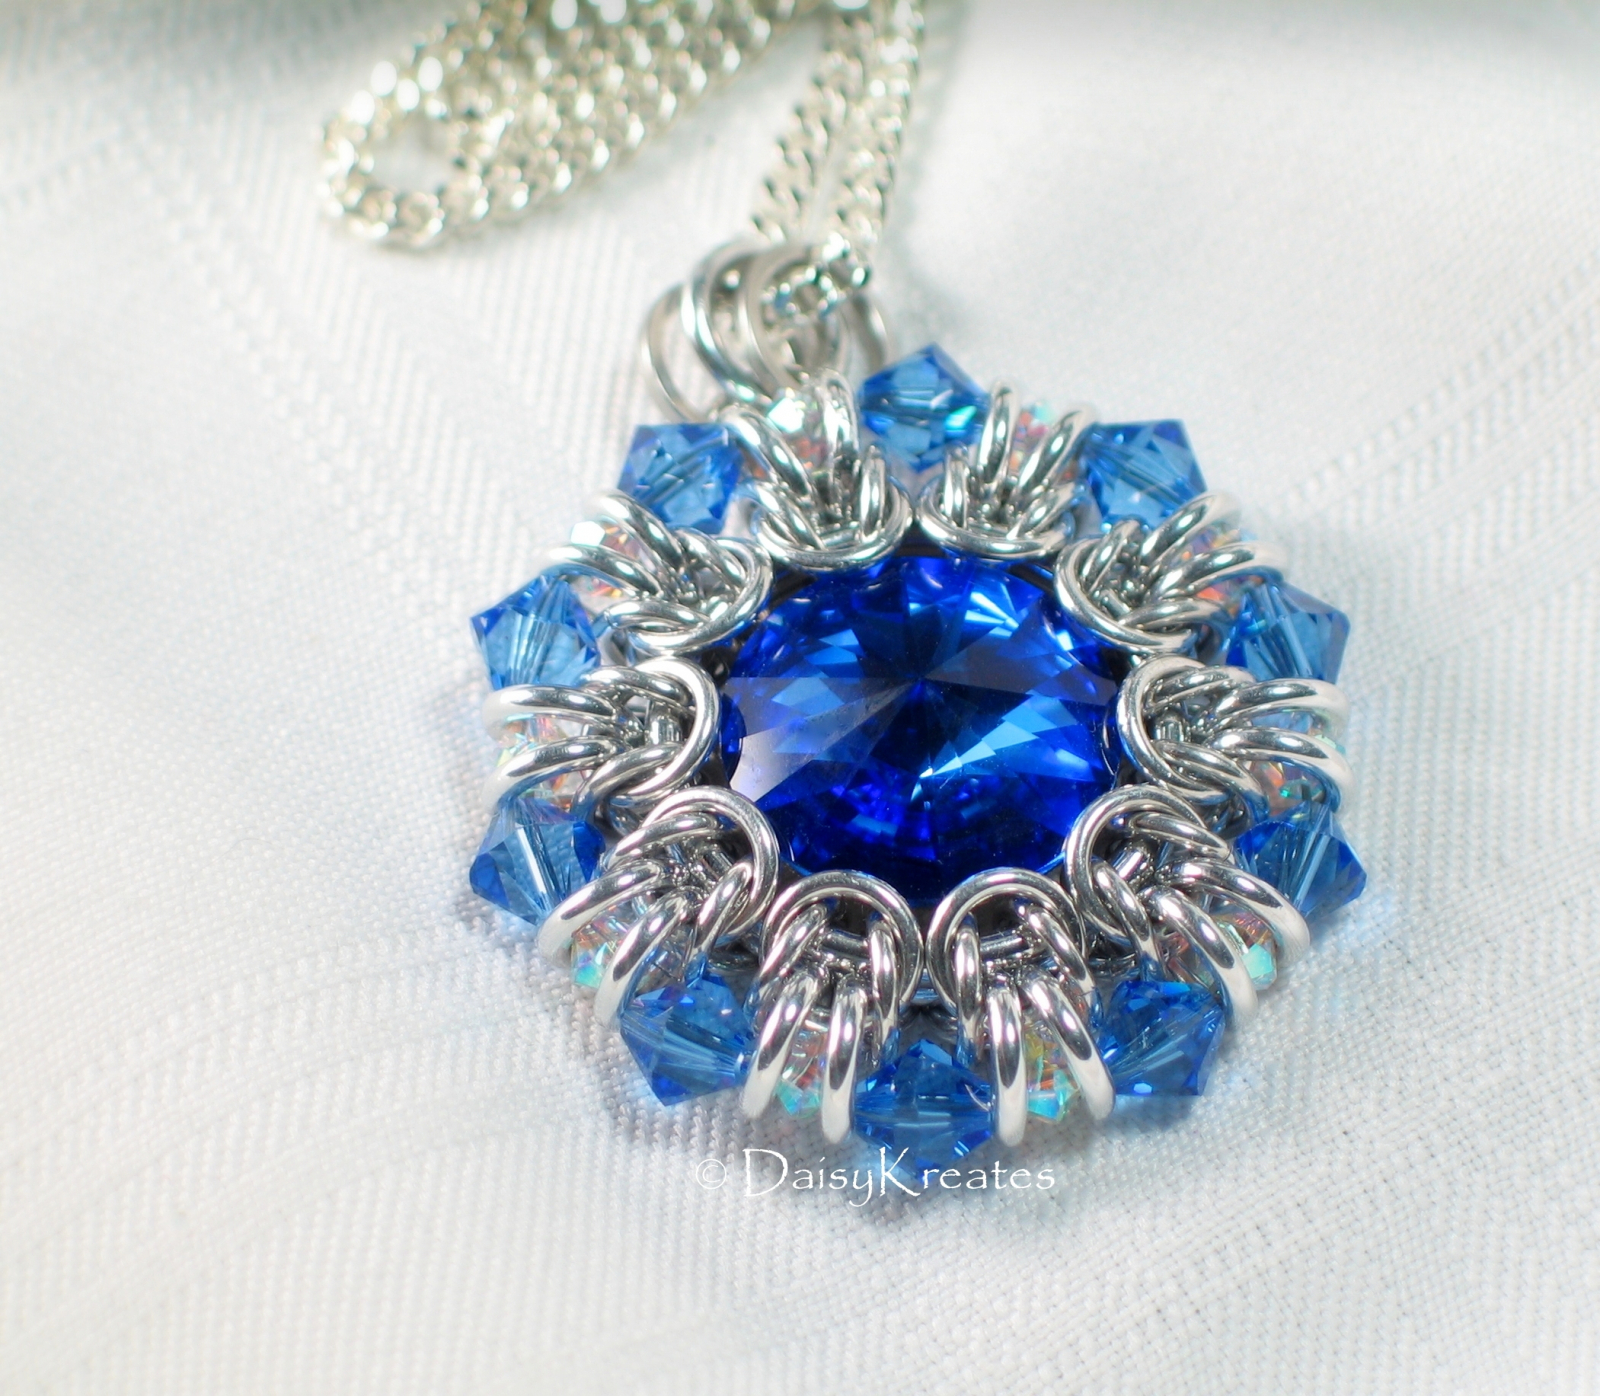 Helios sunburst medallion pendant with jewel tone swarovski clear and blue bicone beads form pointy outer rim as crystal ruffle aloadofball Choice Image